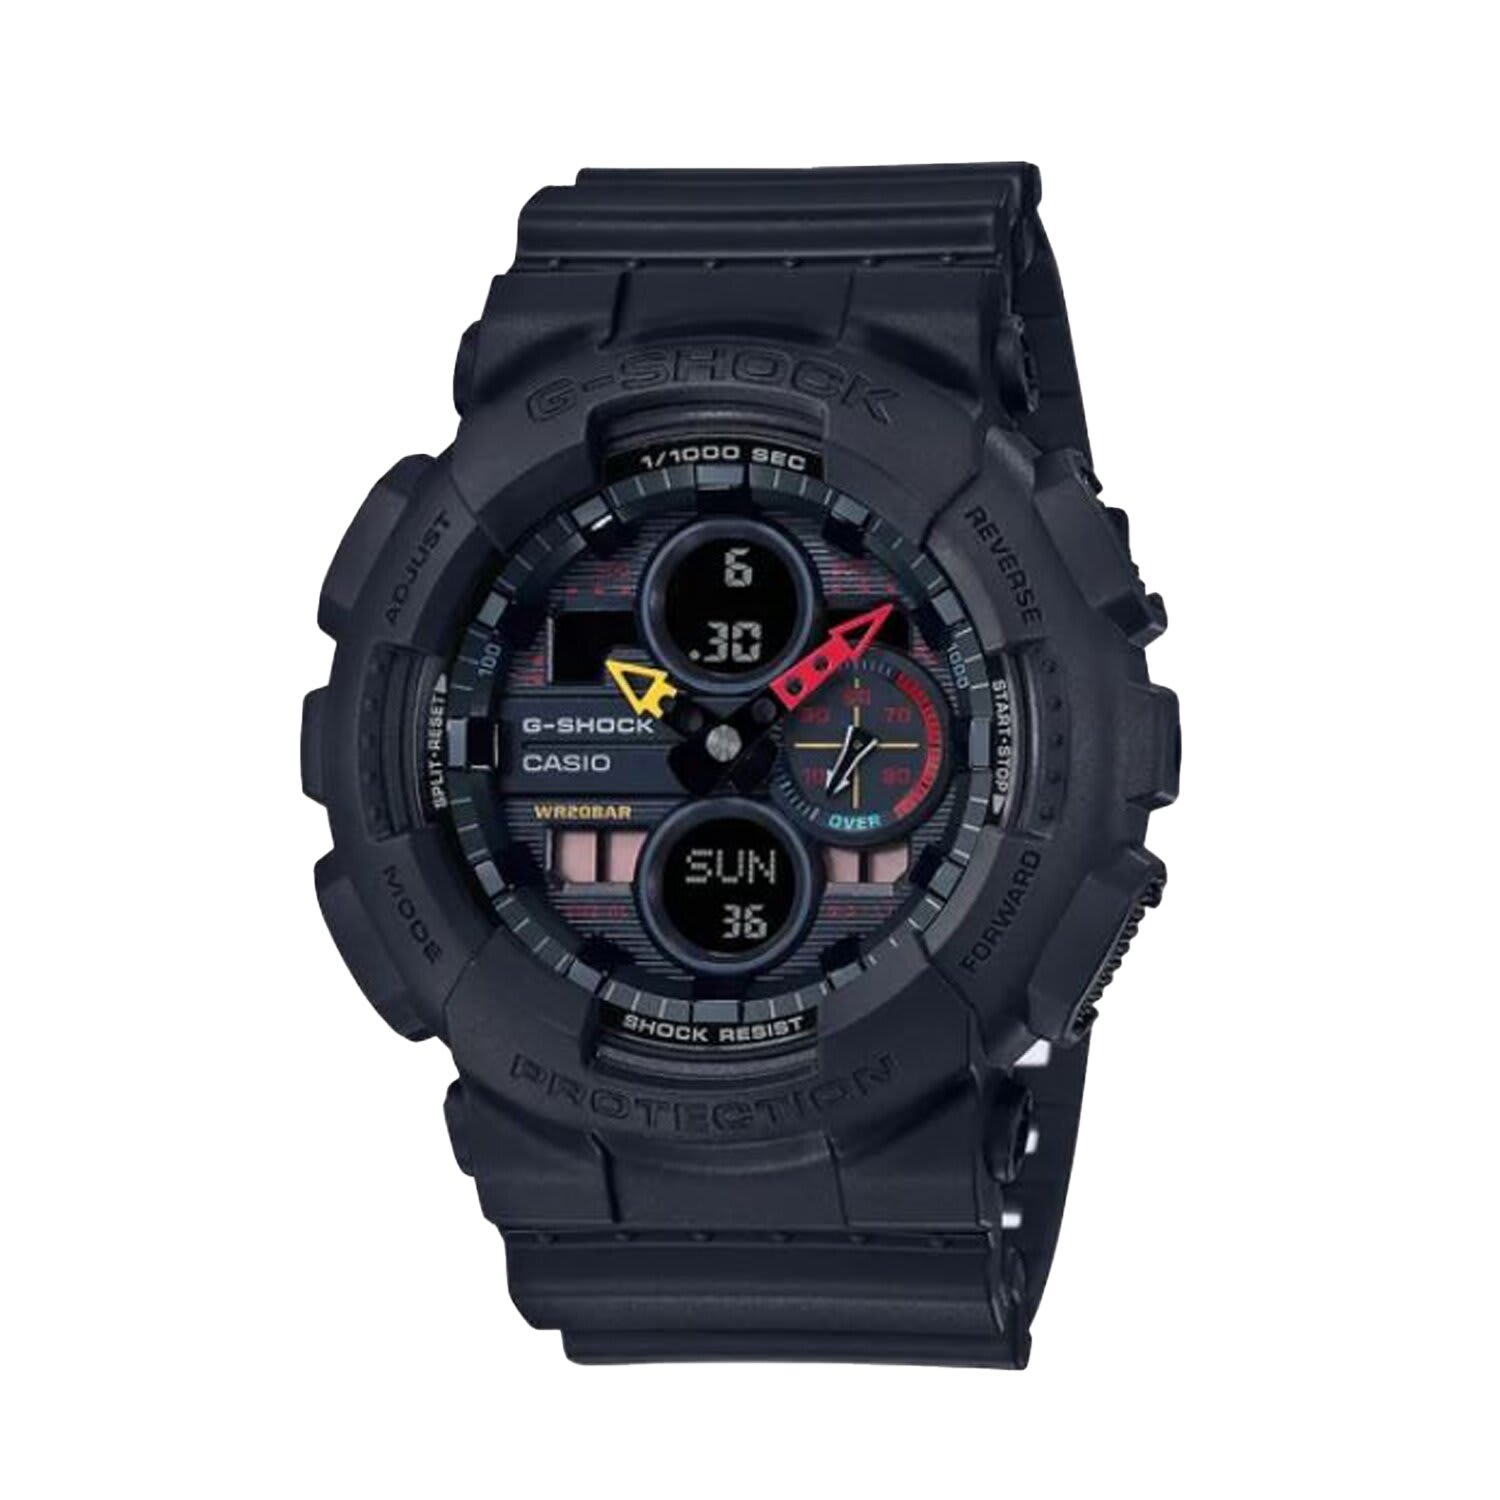 Casio G-Shock Watch GA-140BMC-1ADR